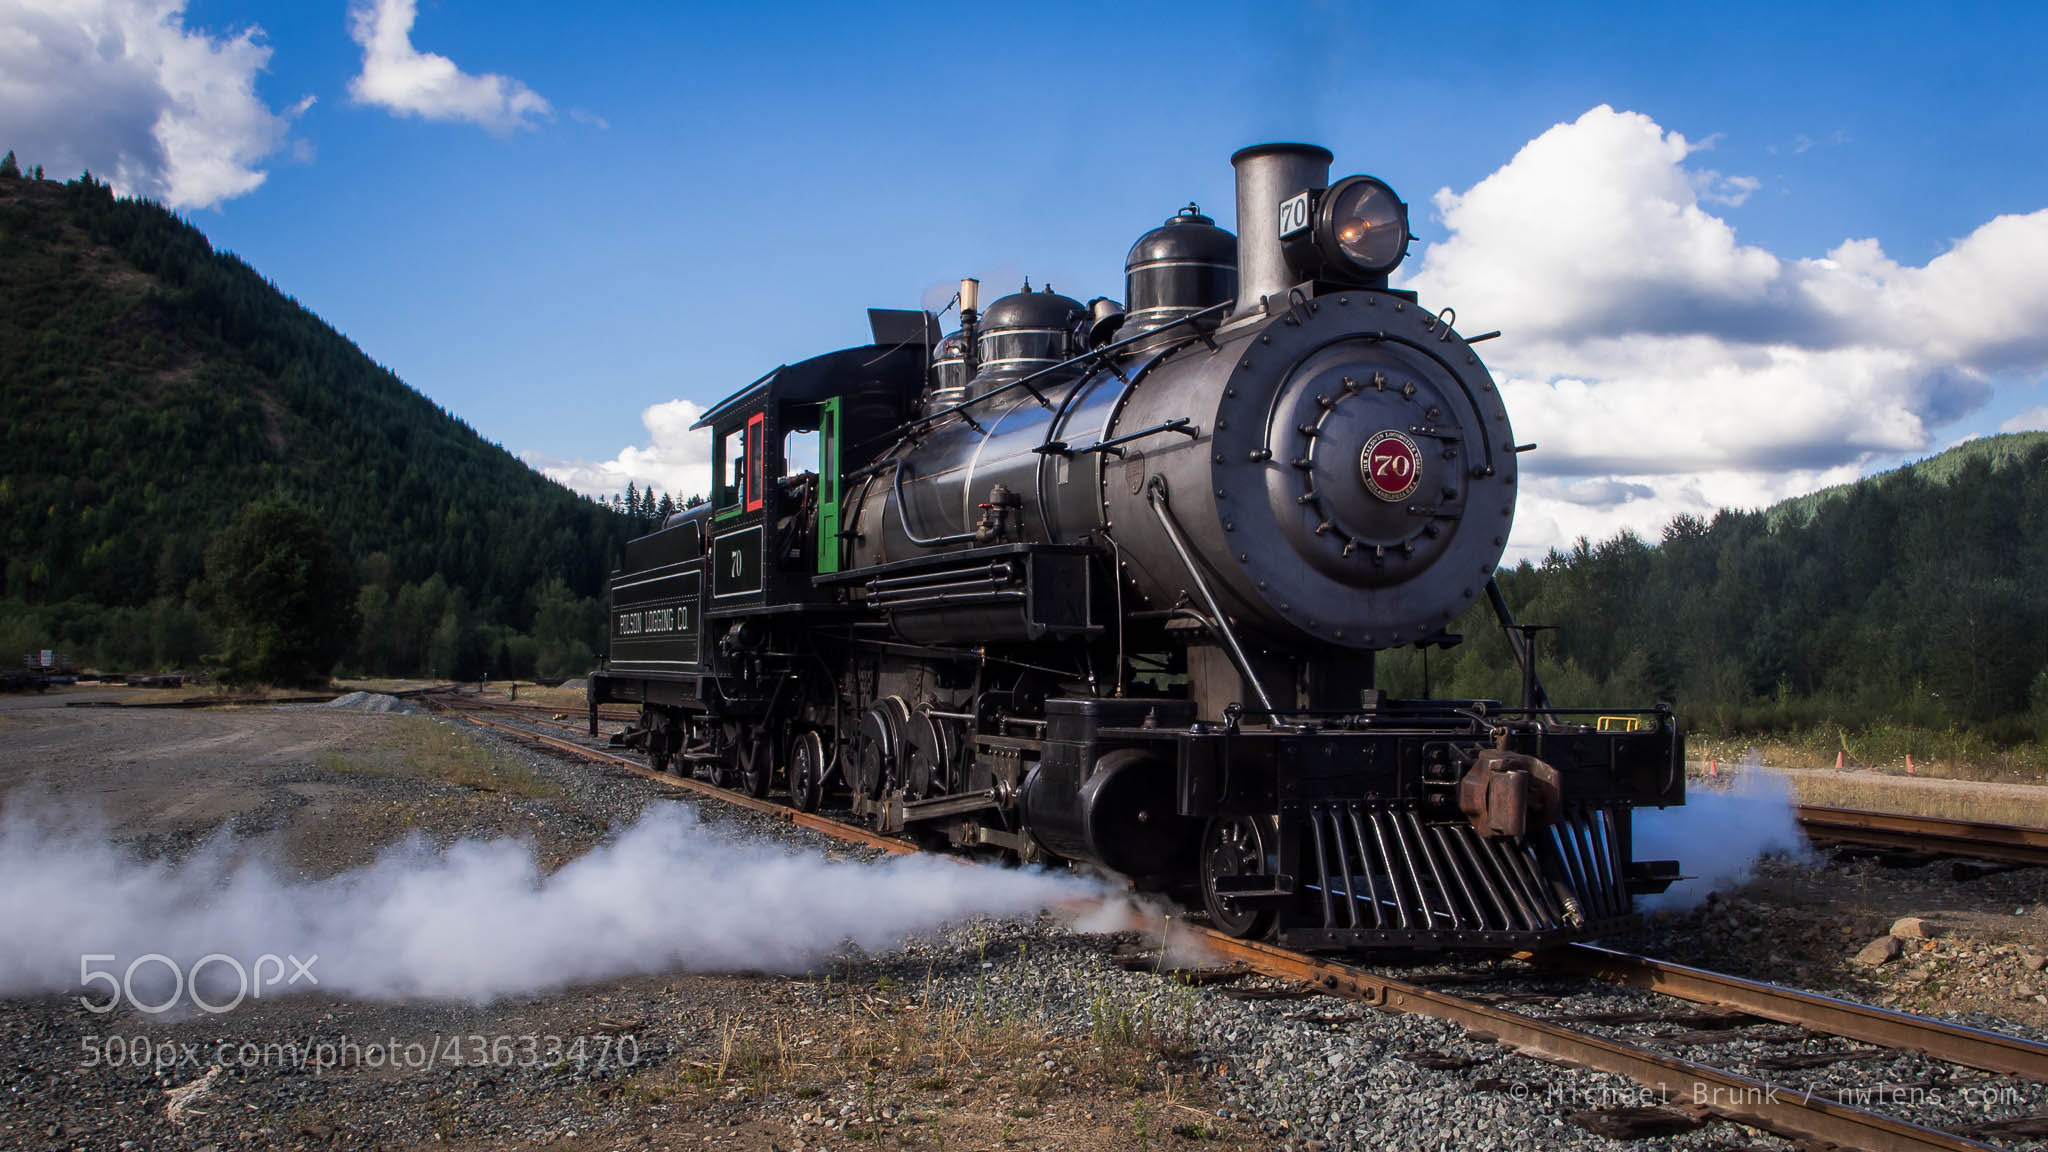 Photograph Old No. 70 by Michael Brunk on 500px